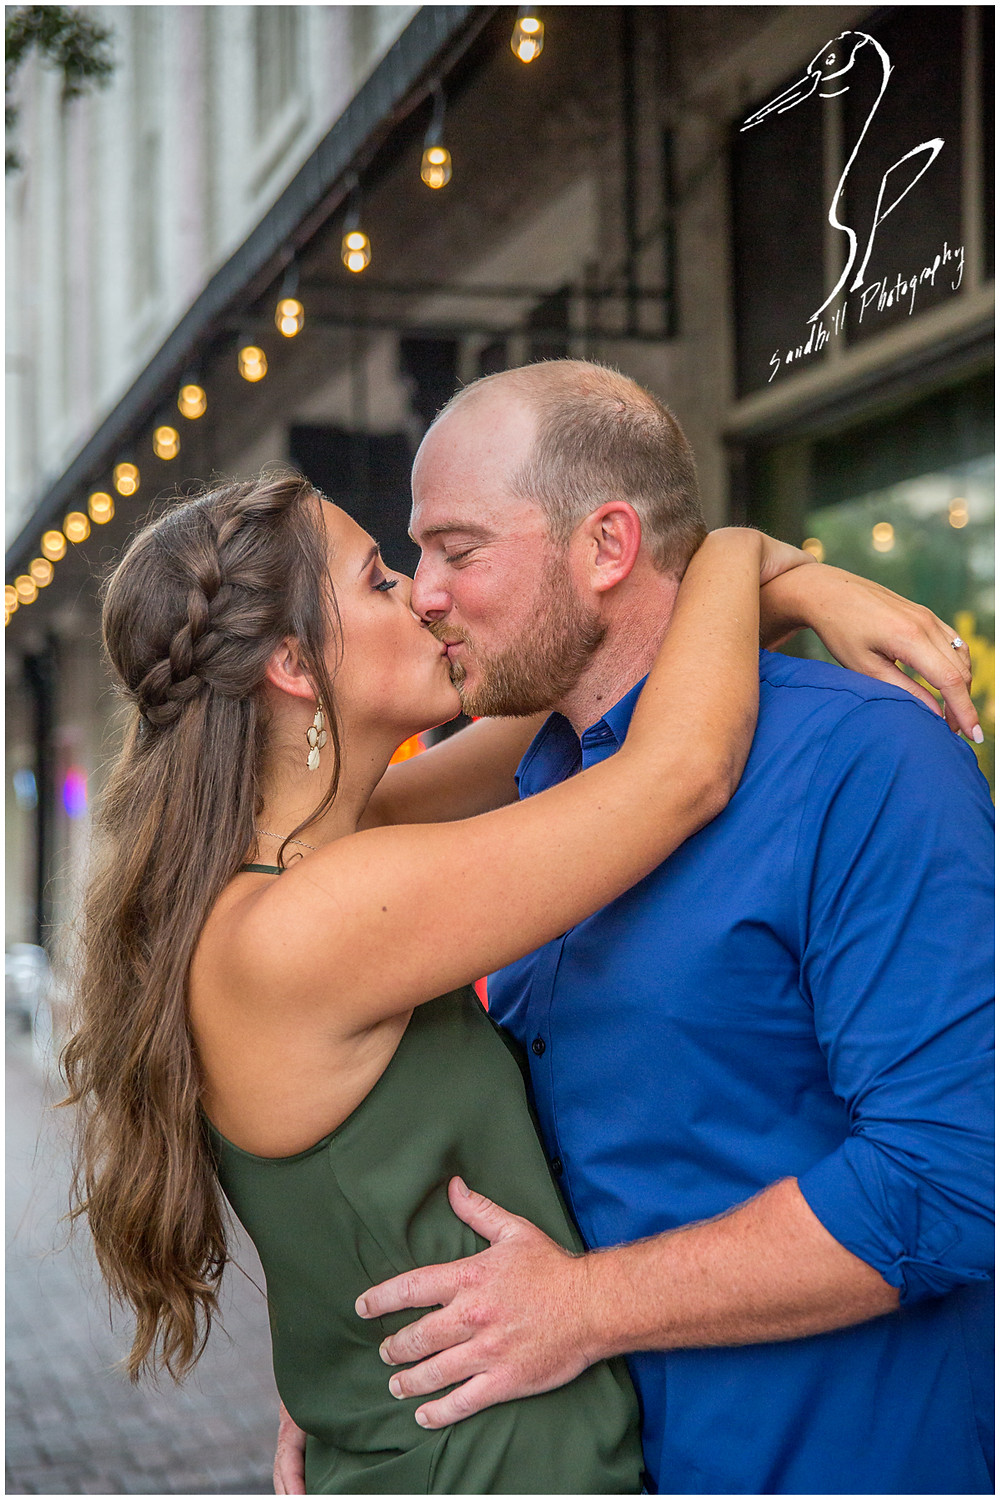 Downtown Bradenton Engagement Photography, a newly engaged couple share a kiss with the lights of an urban setting behind them